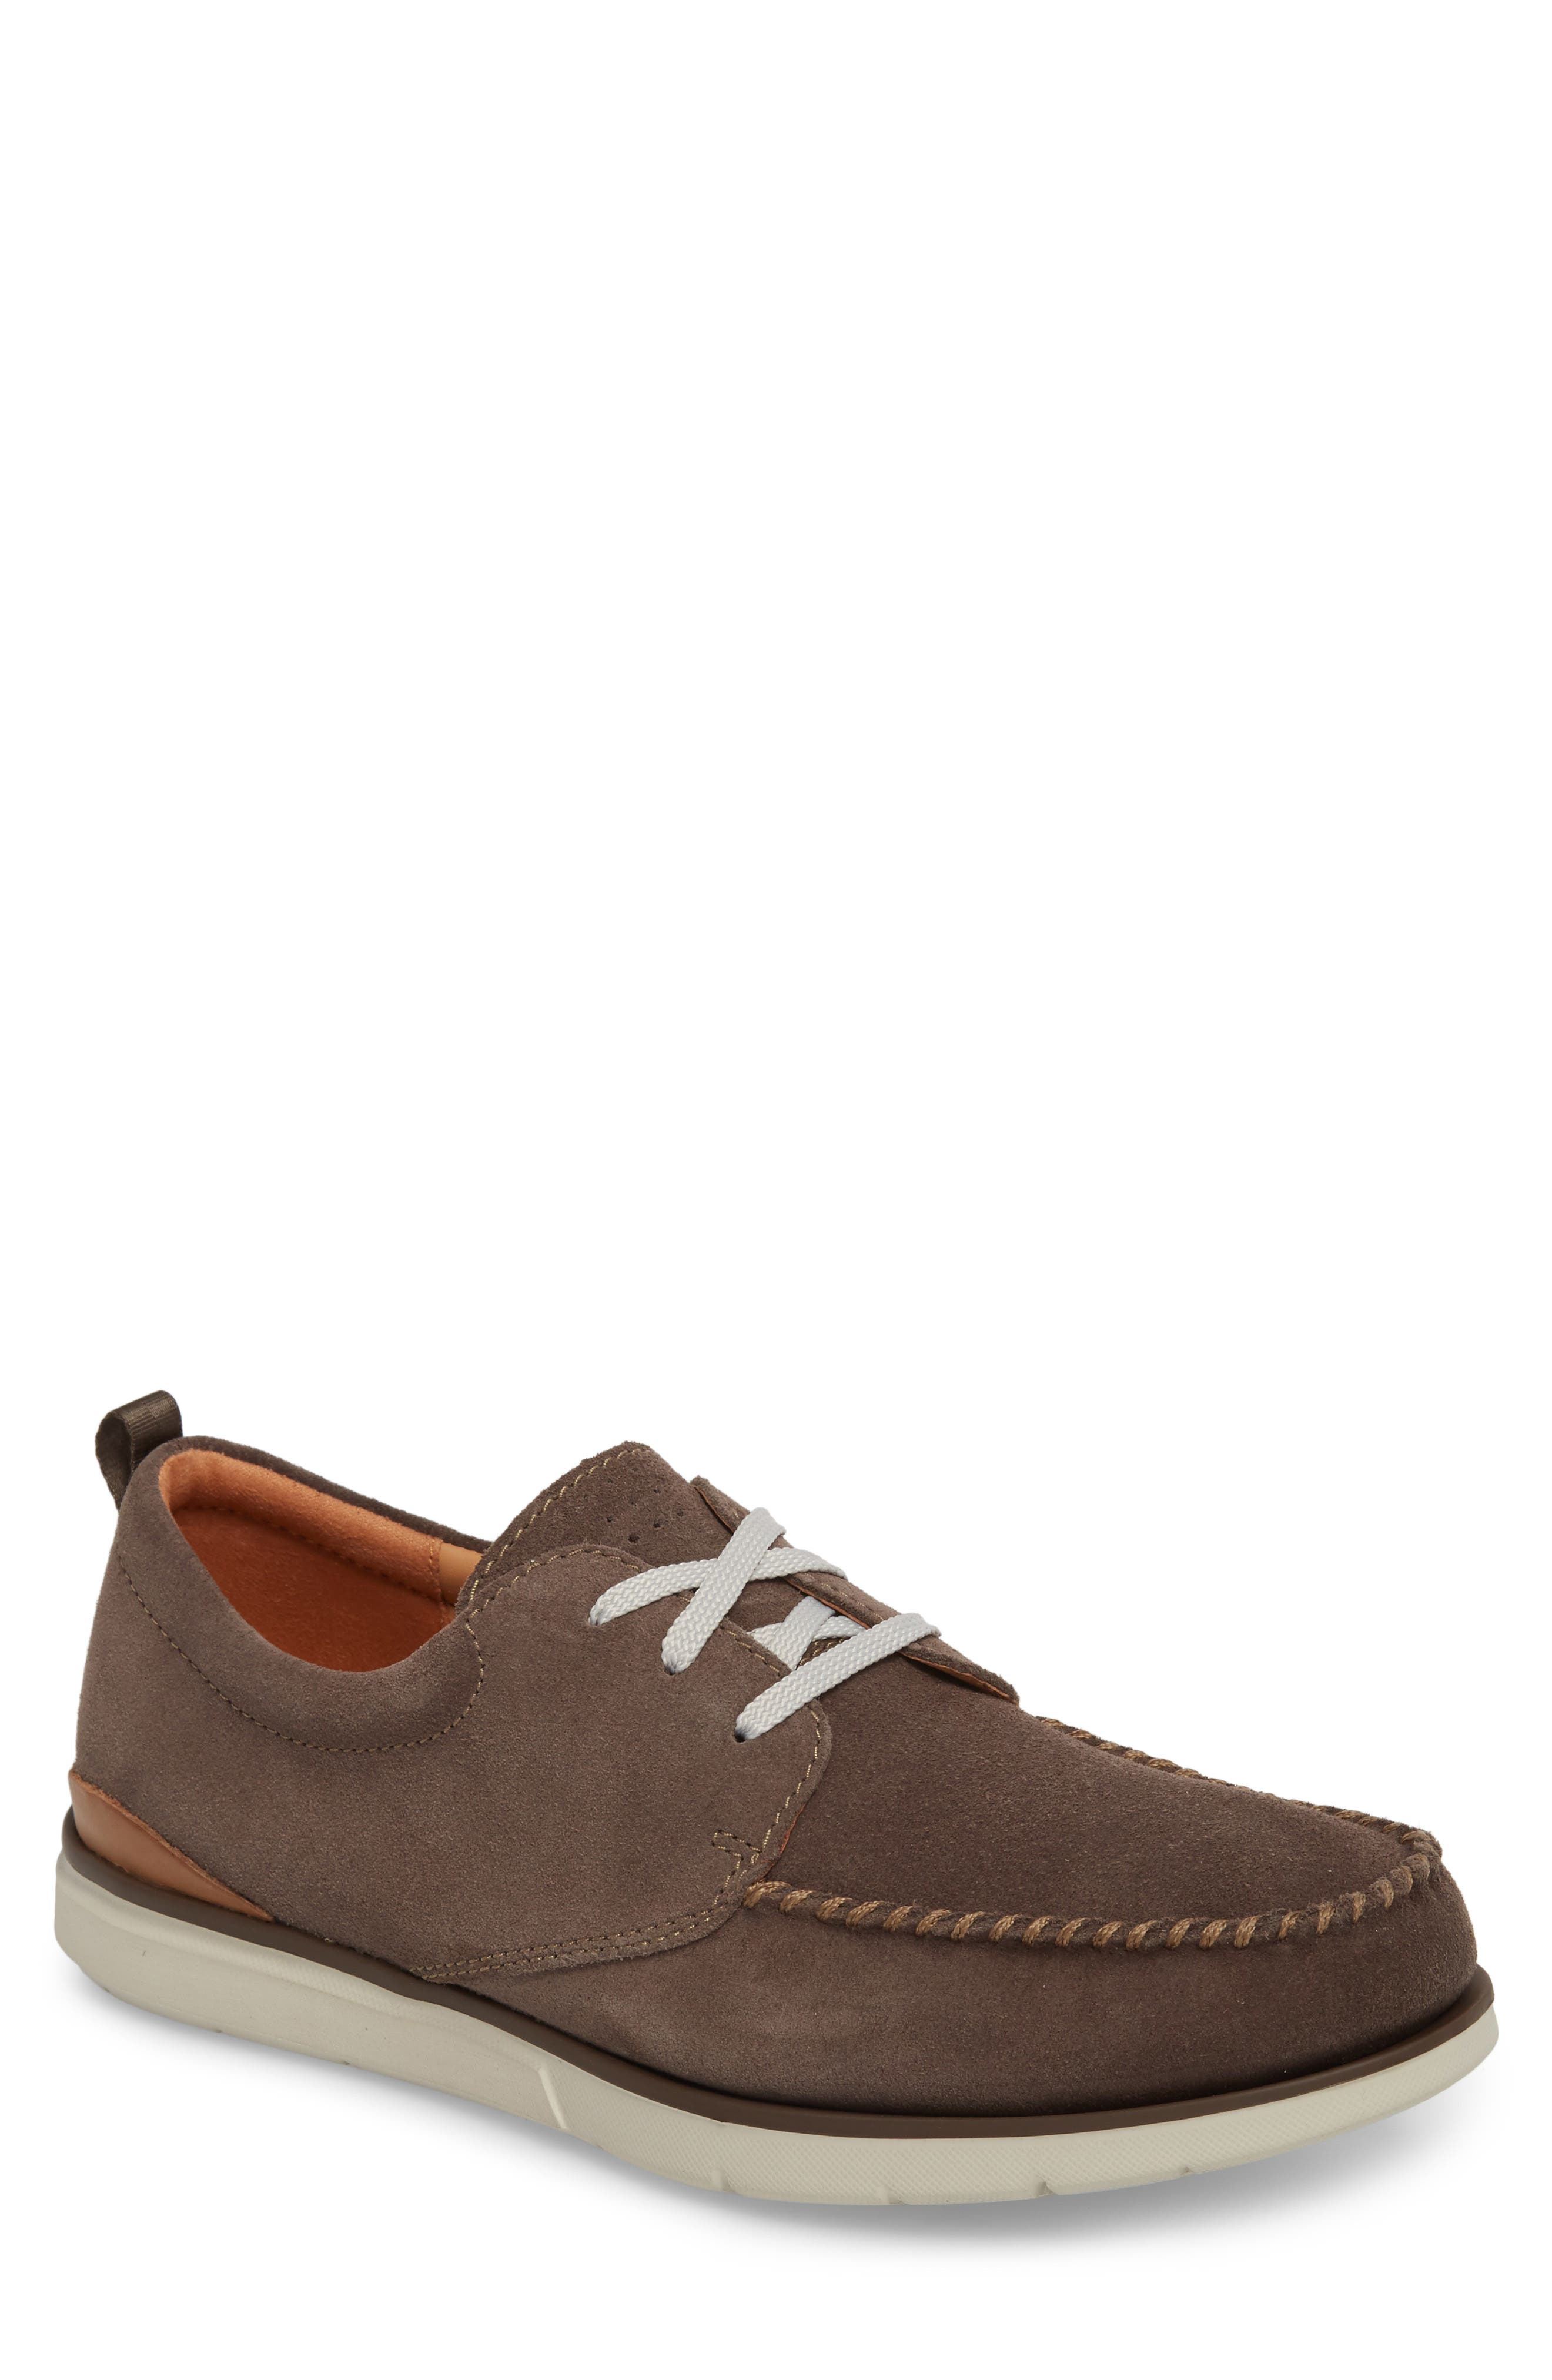 Edgewood Mix Moc Toe Derby,                             Main thumbnail 1, color,                             Taupe Suede